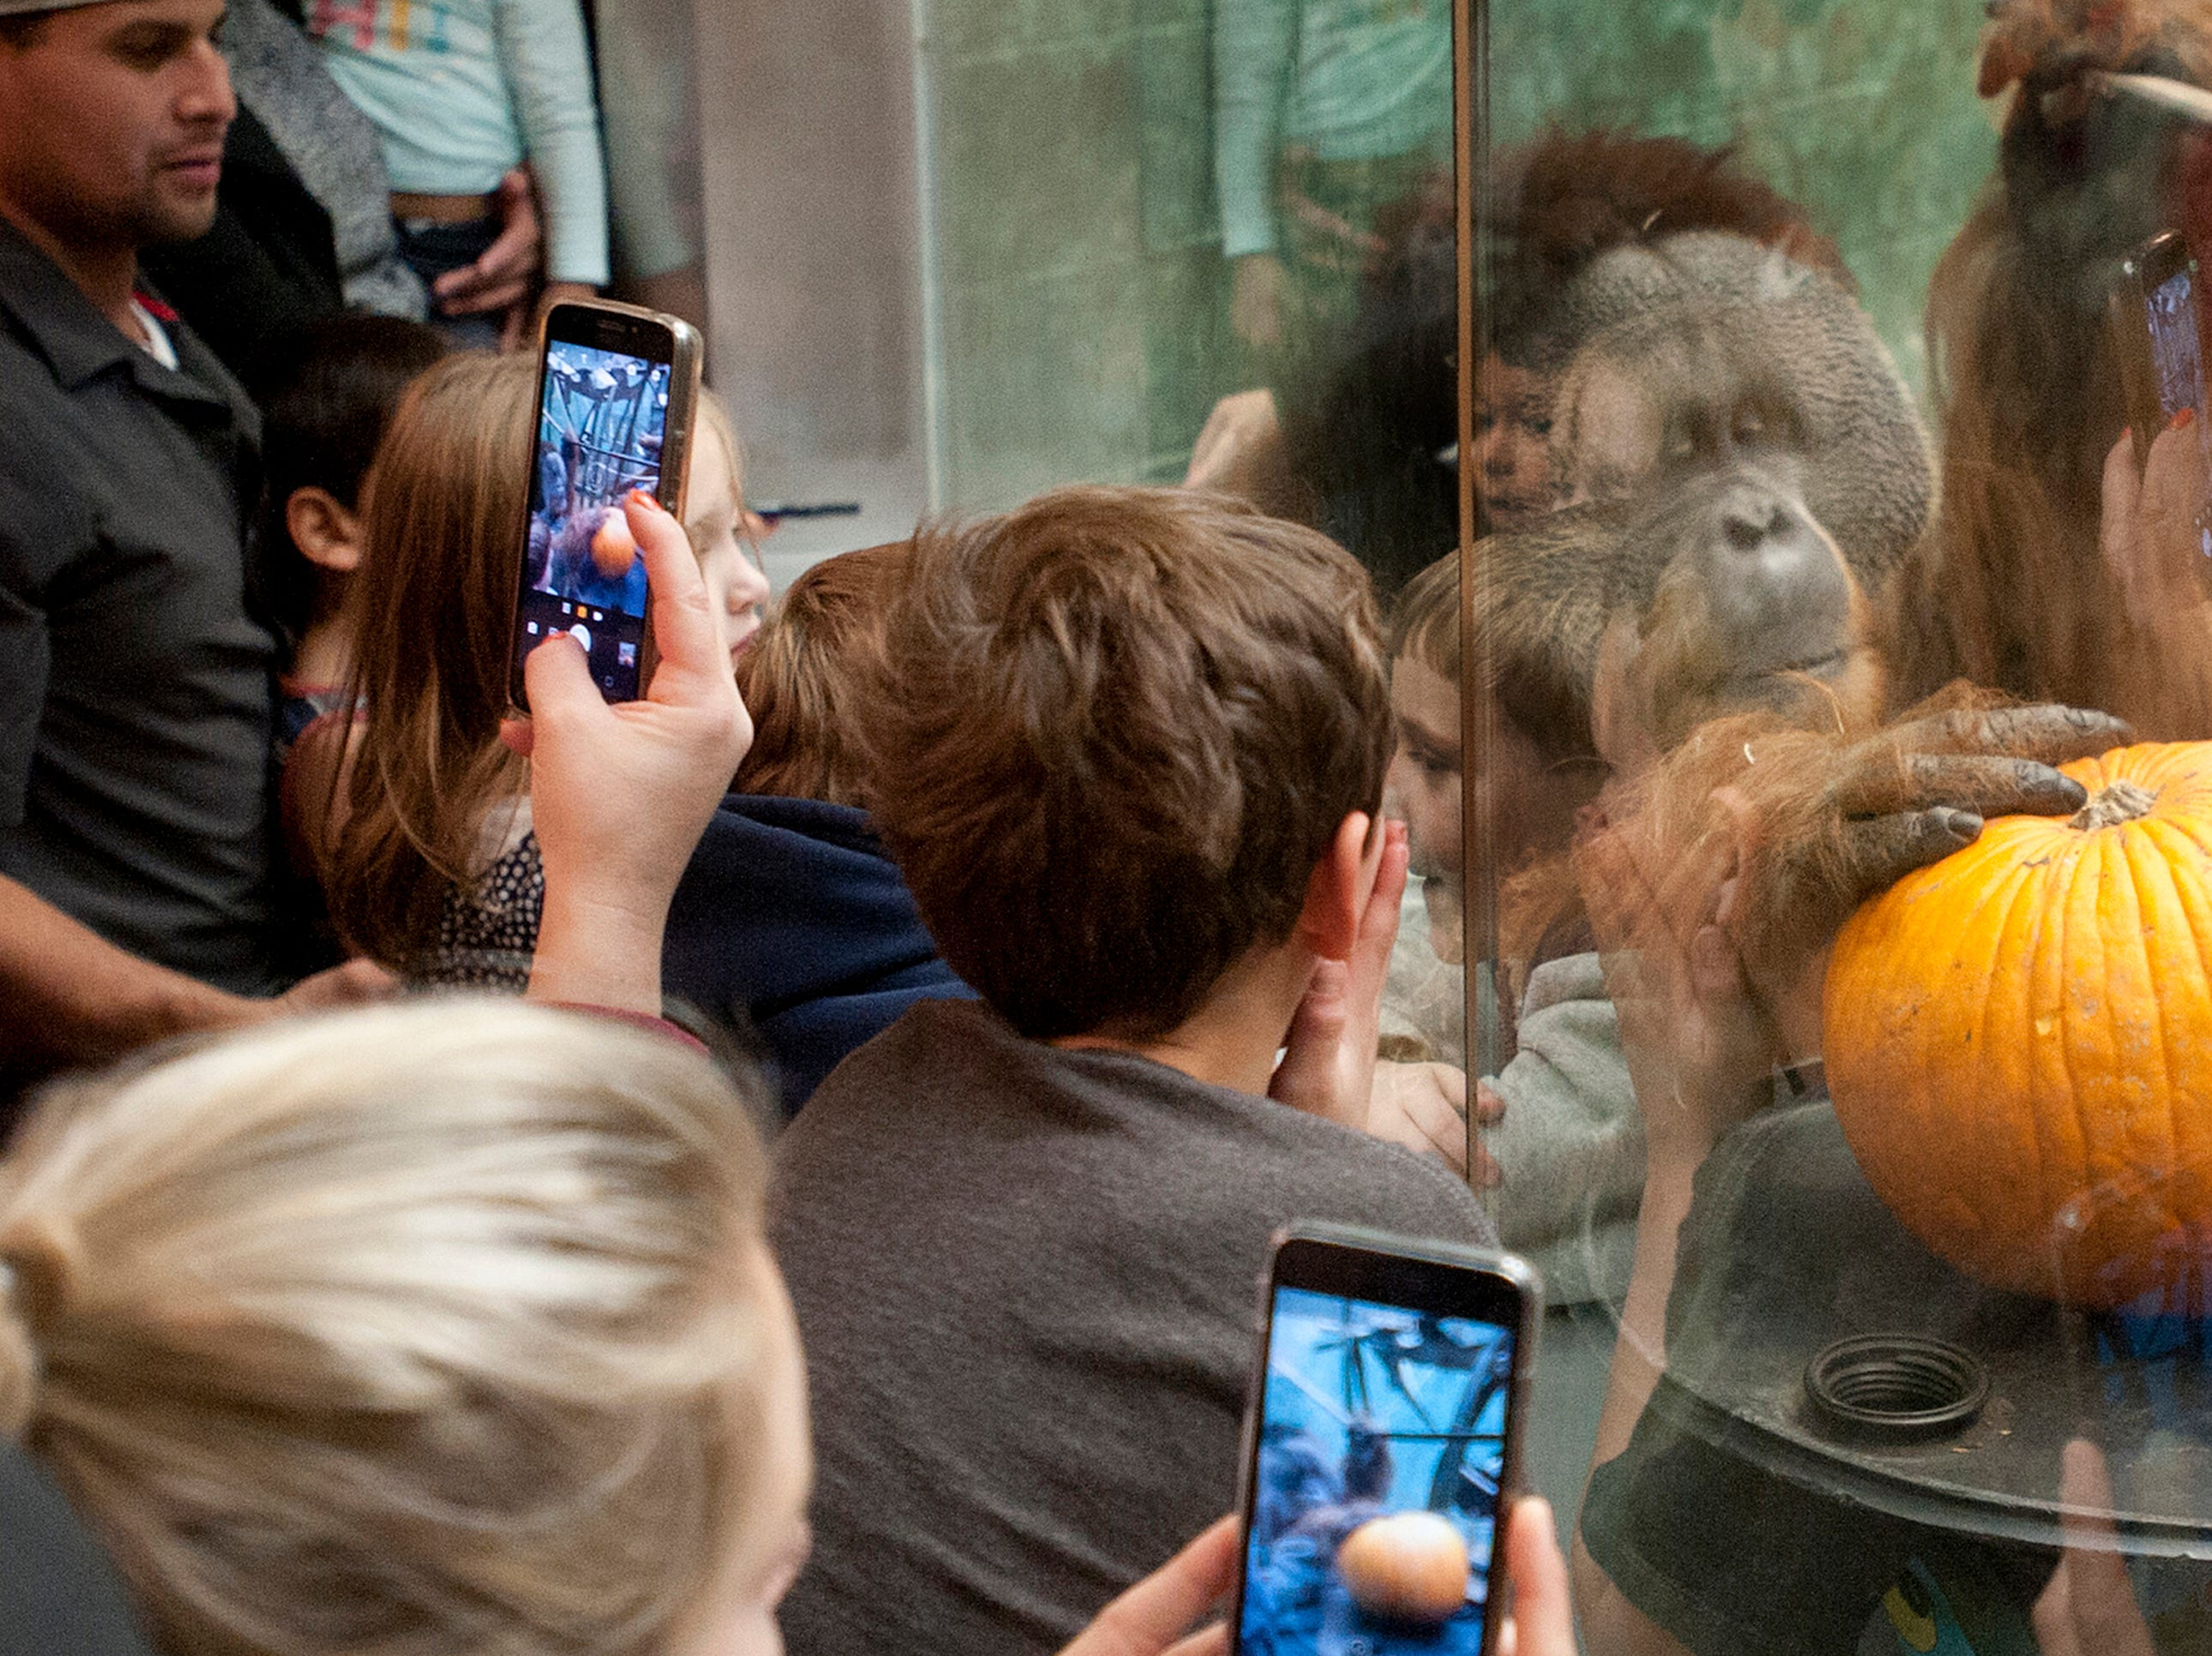 Visitors to the zoo use their smart phones to photograph Teak, an orangutan at the Louisville Zoo's annual pumpkin smash as he checks one out. The pumpkins being fed to the animals are from the zoo's Halloween event. November 04, 2018